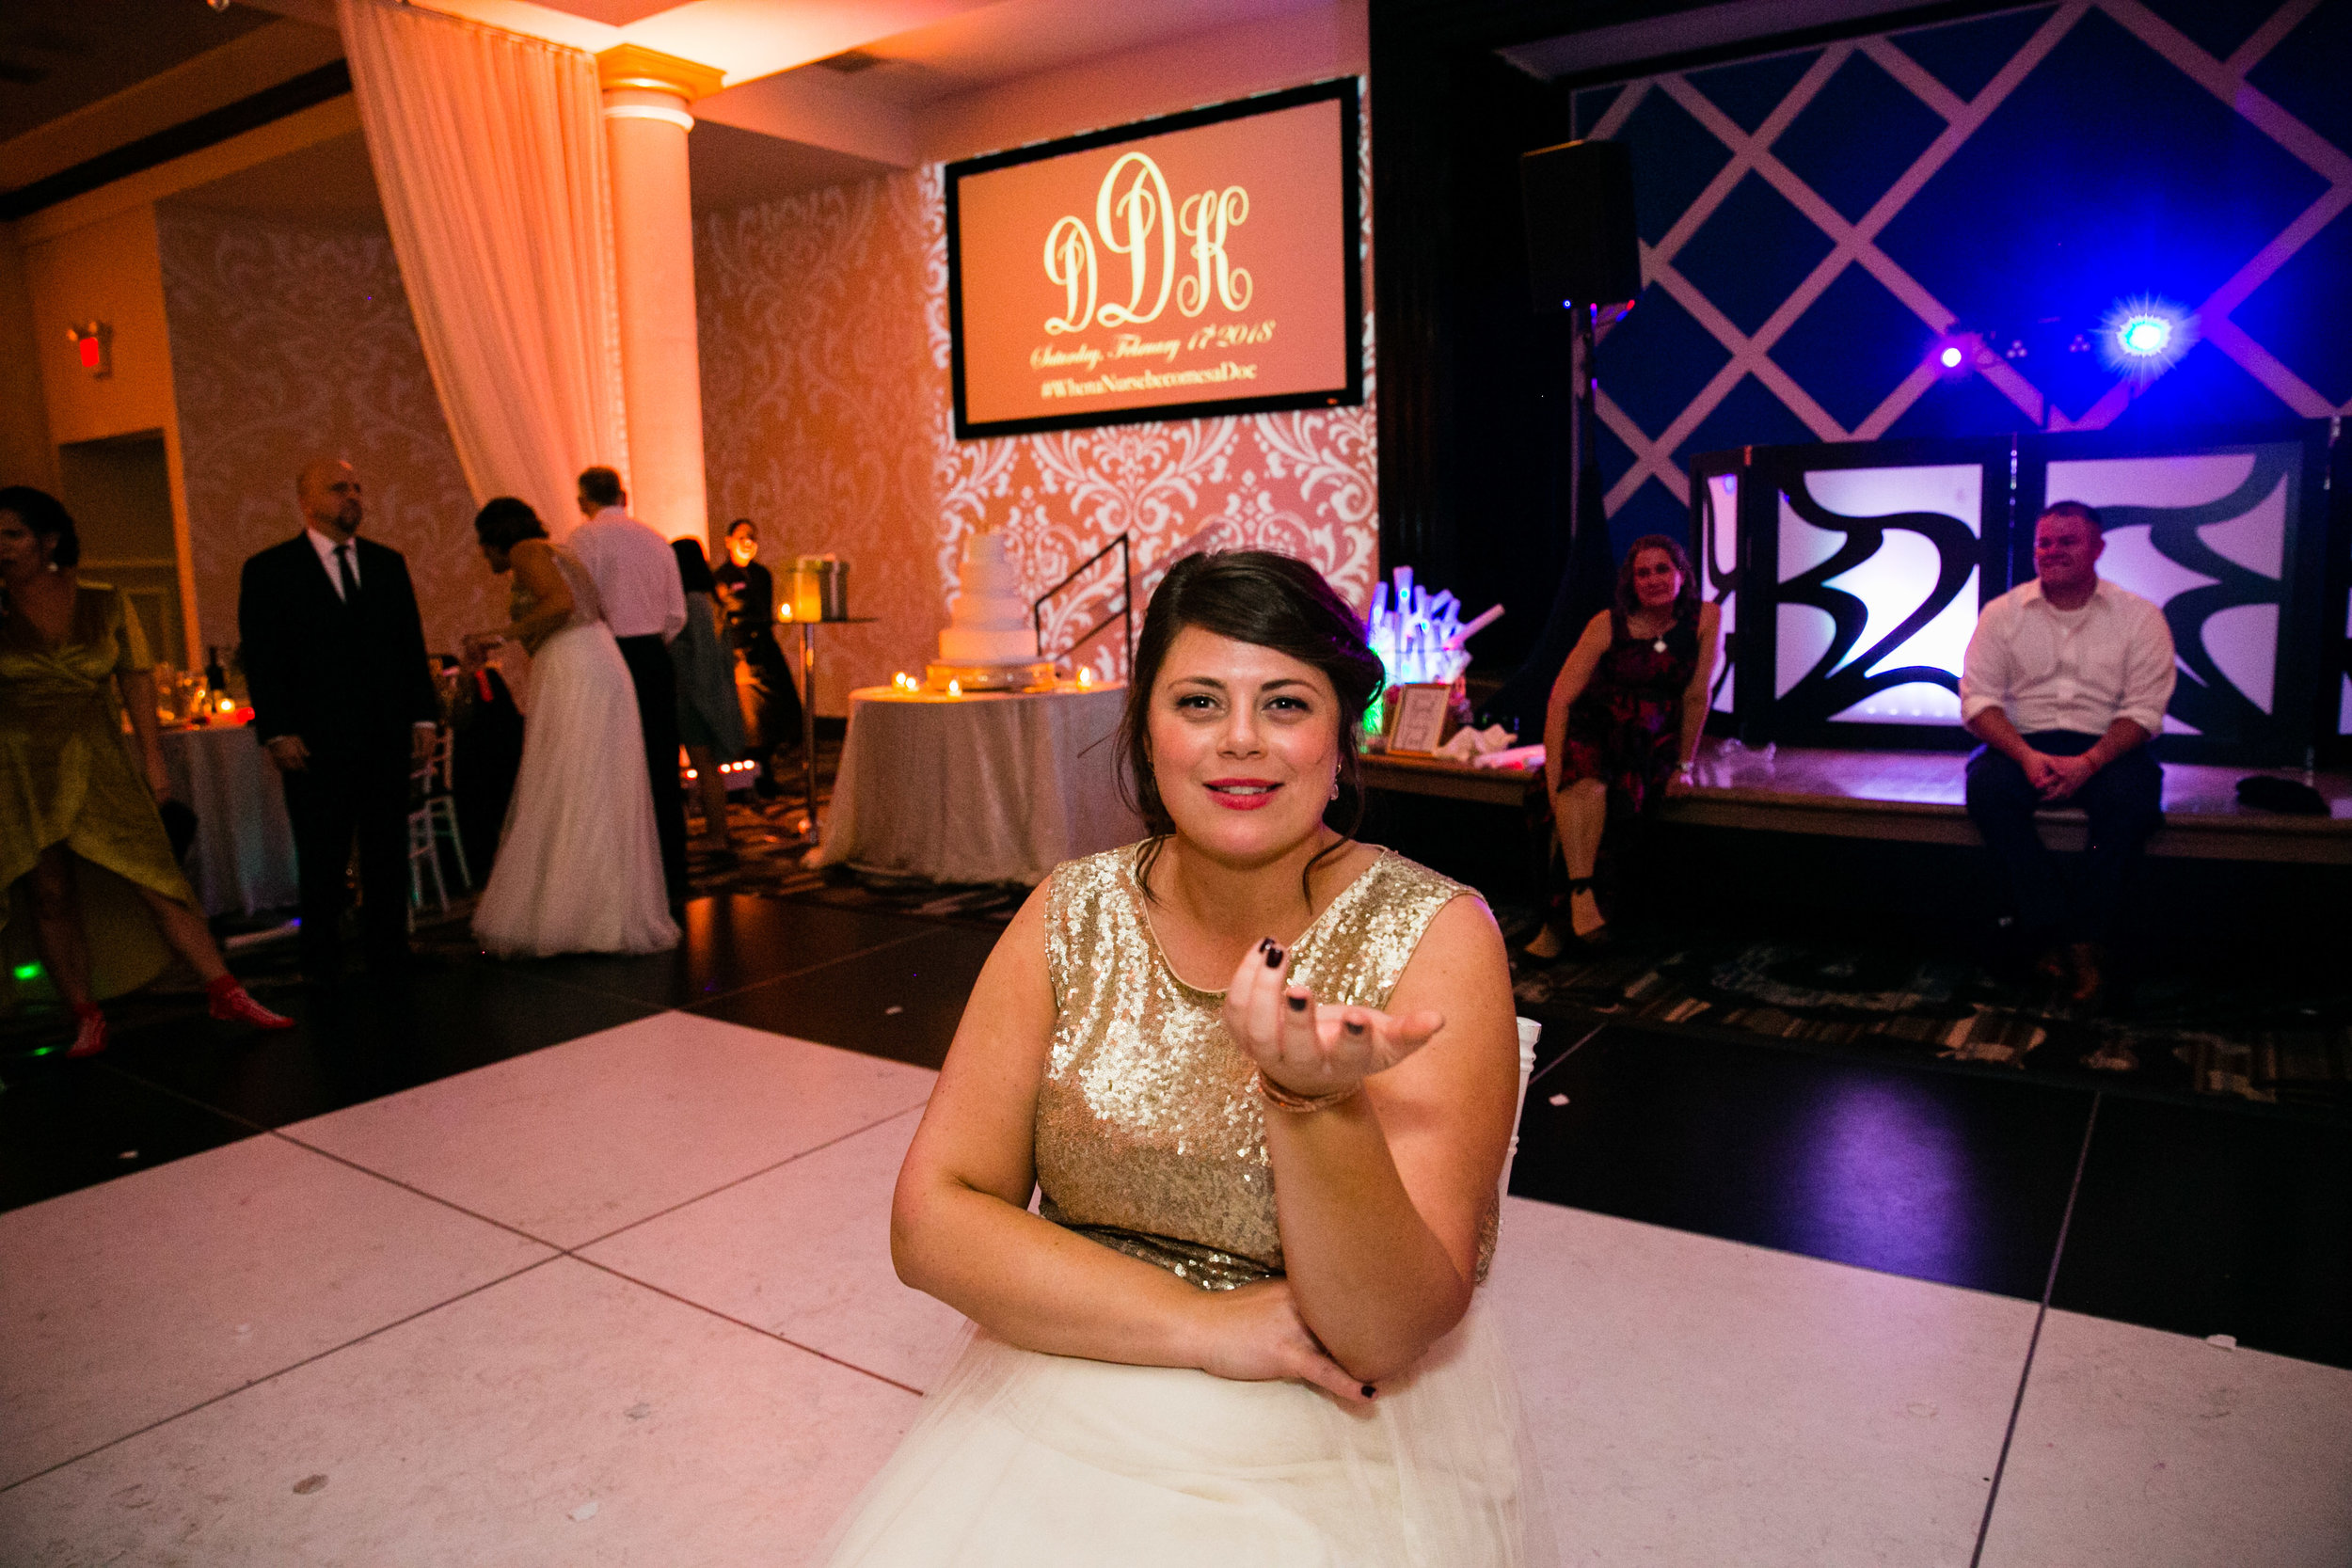 VIE WEDDING PHOTOS - CESCAPHE EVENT GROUP - LOVESTRUCK PICTURES -152.jpg